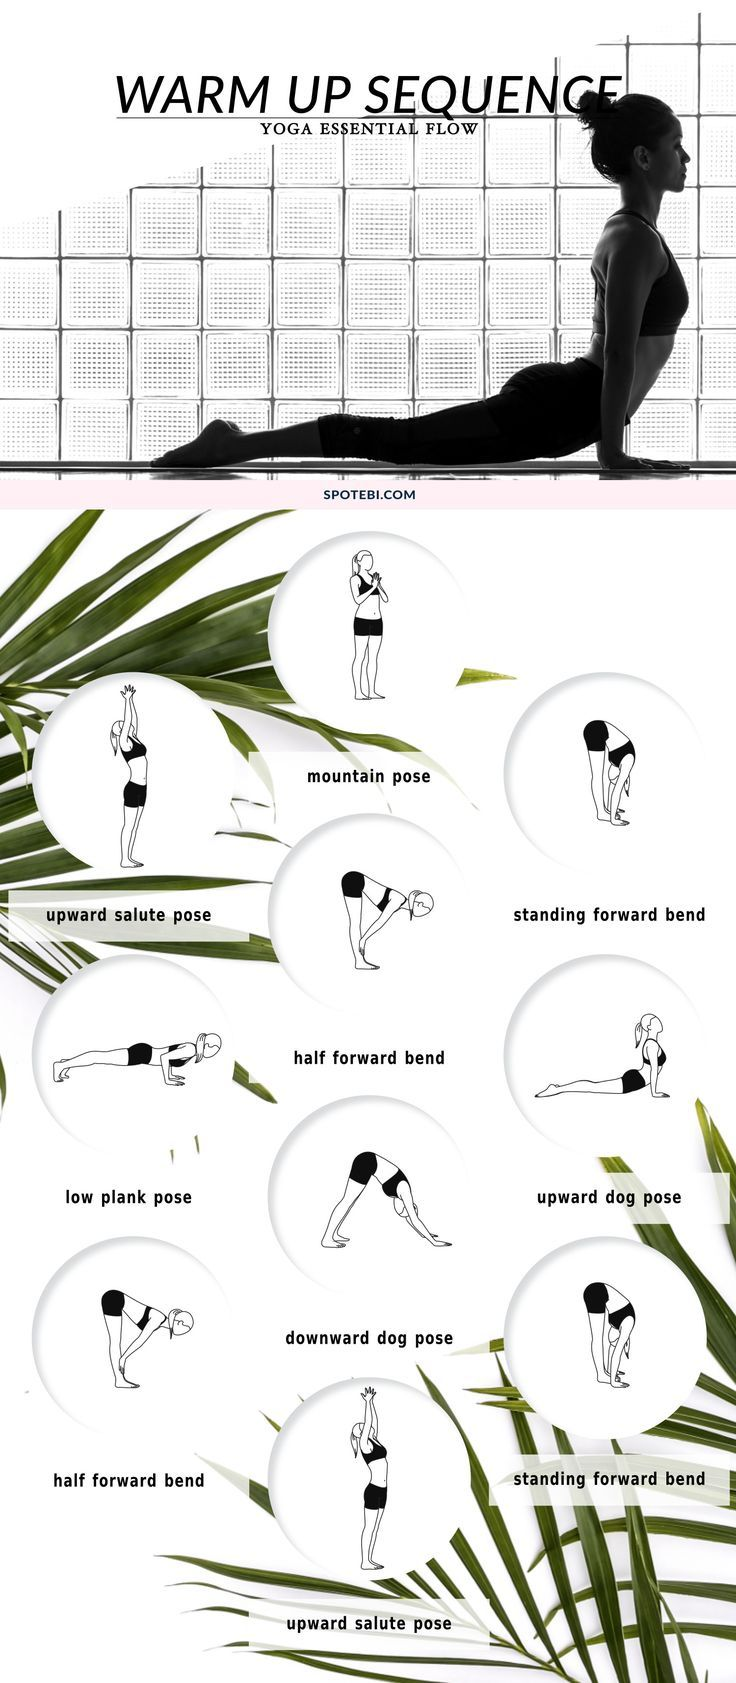 Knee Pain: WARM UP ESSENTIAL FLOW